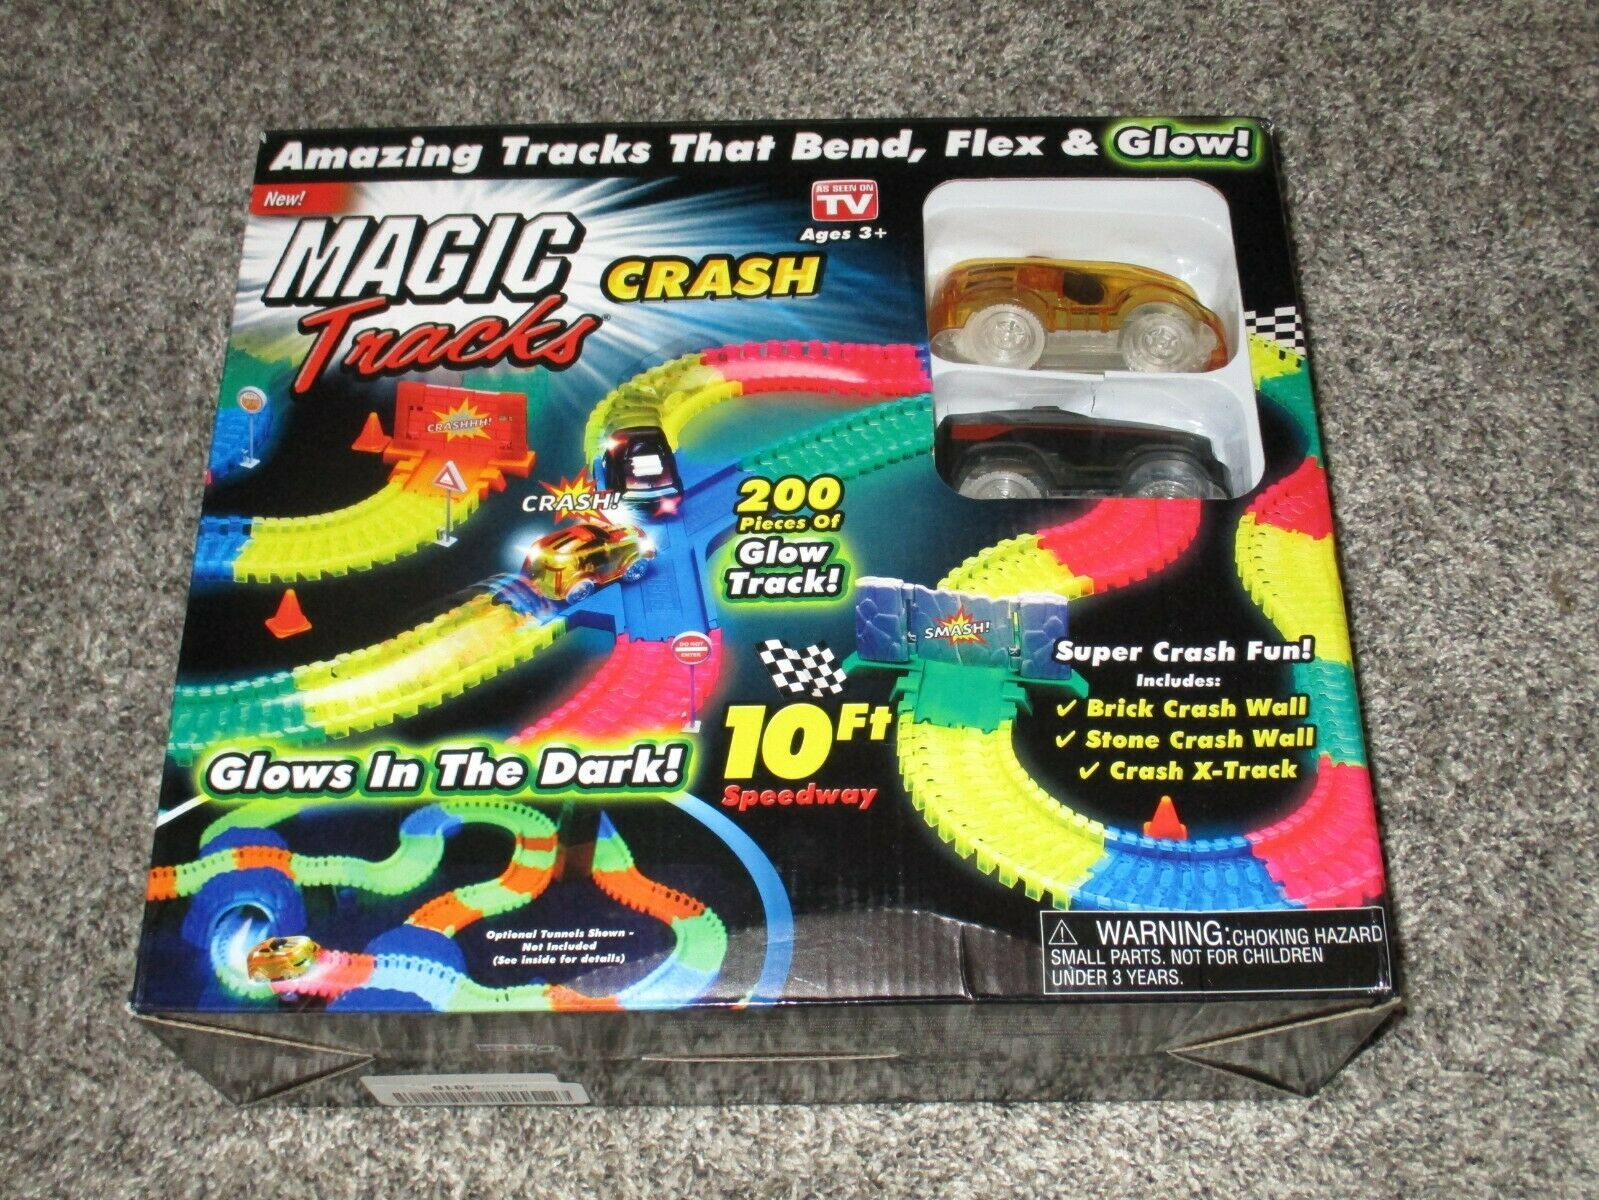 Magic Tracks Crash 10 ft of Flexible, Bendable Glow in The Dark As Seen On TV